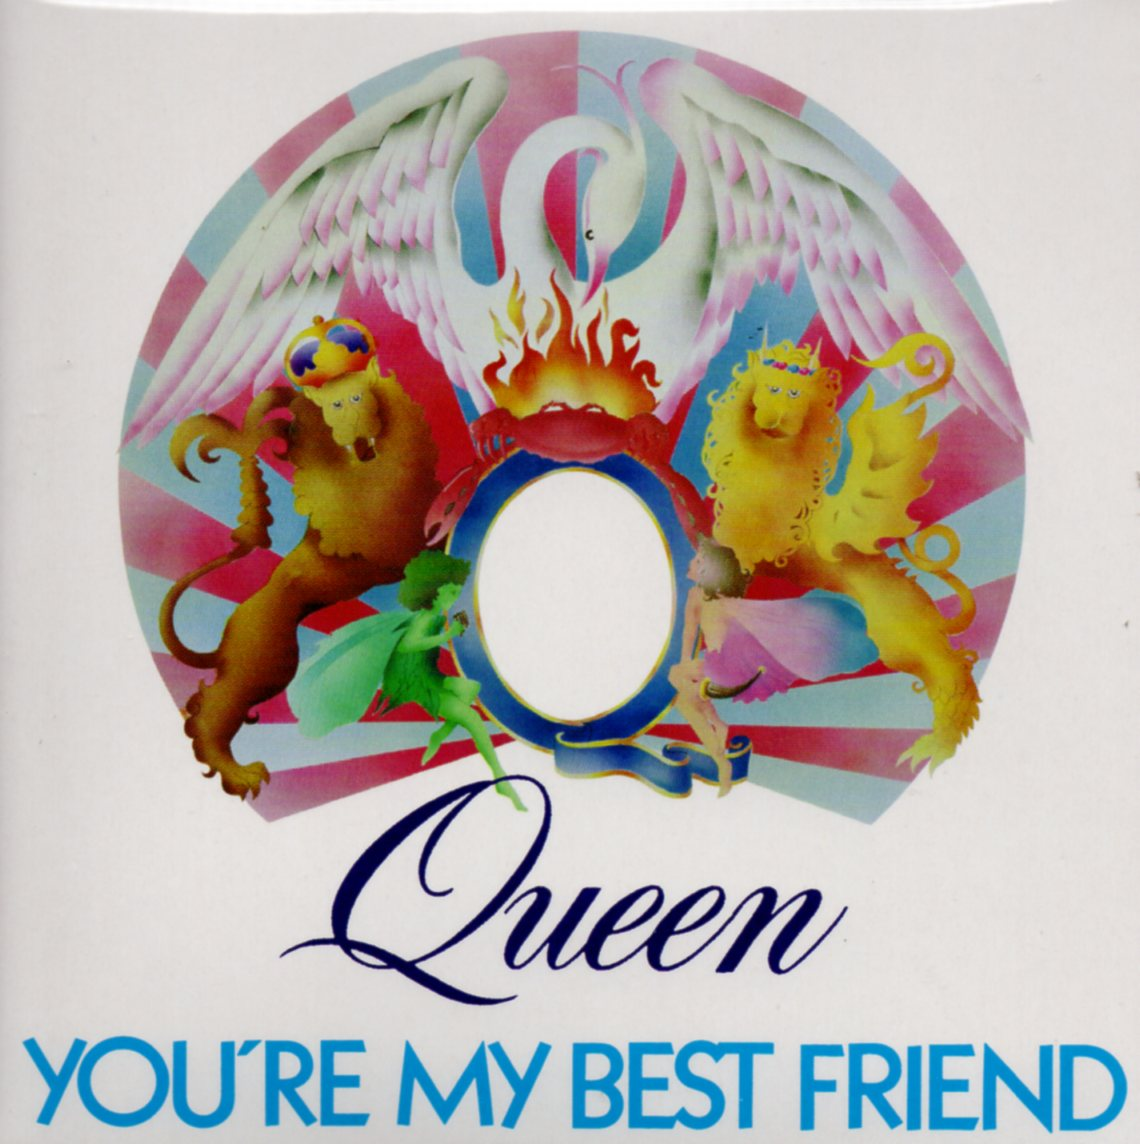 QUEEN - You're My Best Friend + Germany + 2-track Card Sleeve - Reedition Du 45t Original - - Reissue Of Ori